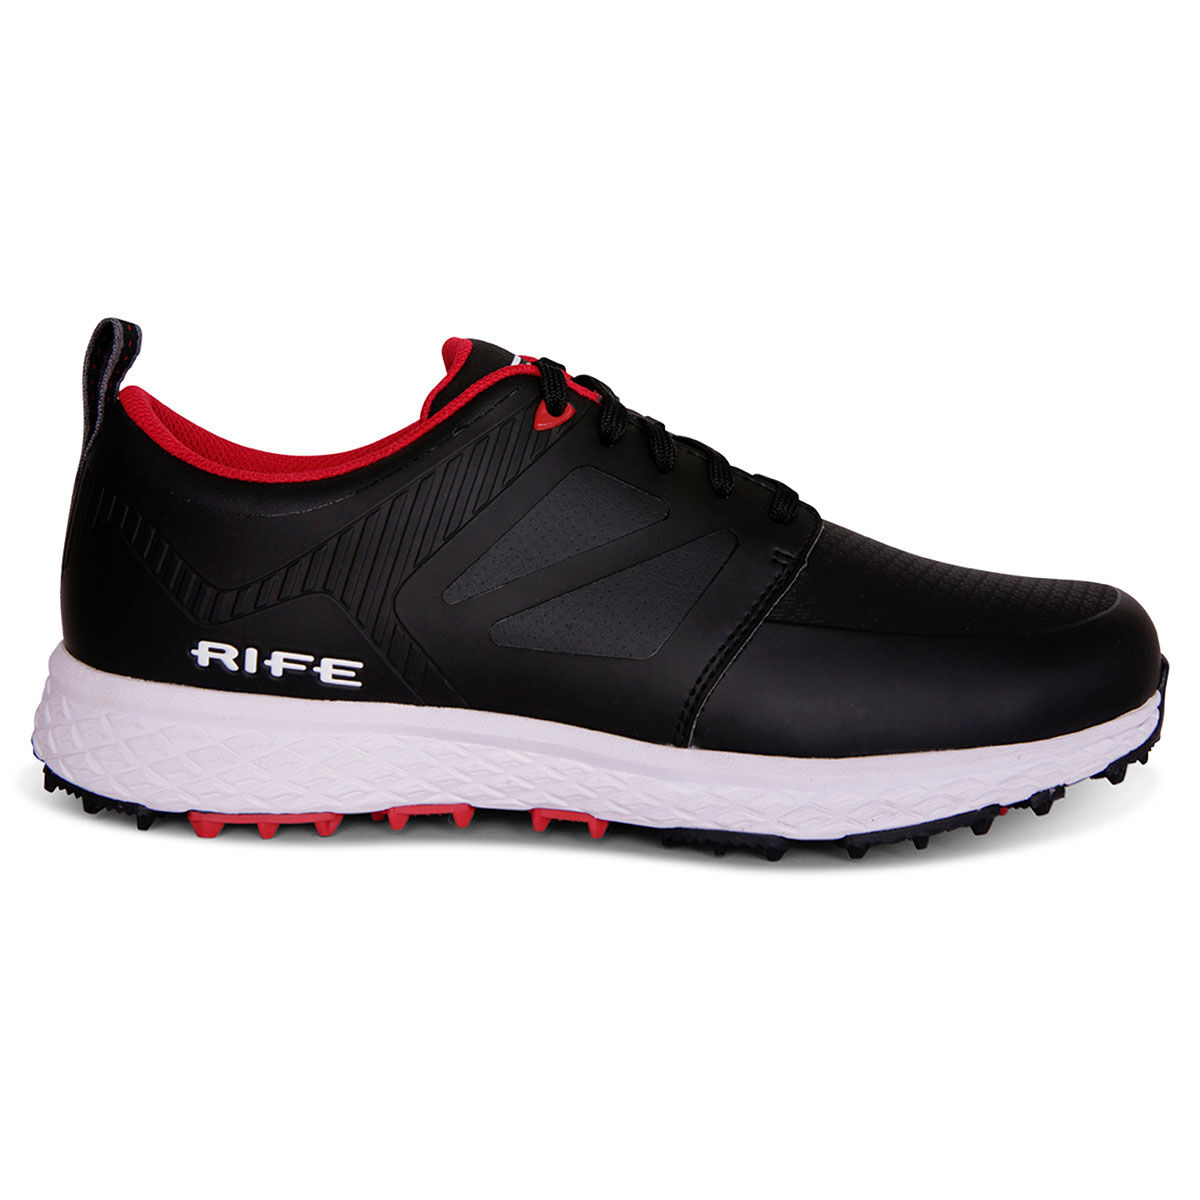 Rife Mens Black and Red RF-10 Edge Spikeless Golf Shoes, Size: 8   American Golf   American Golf